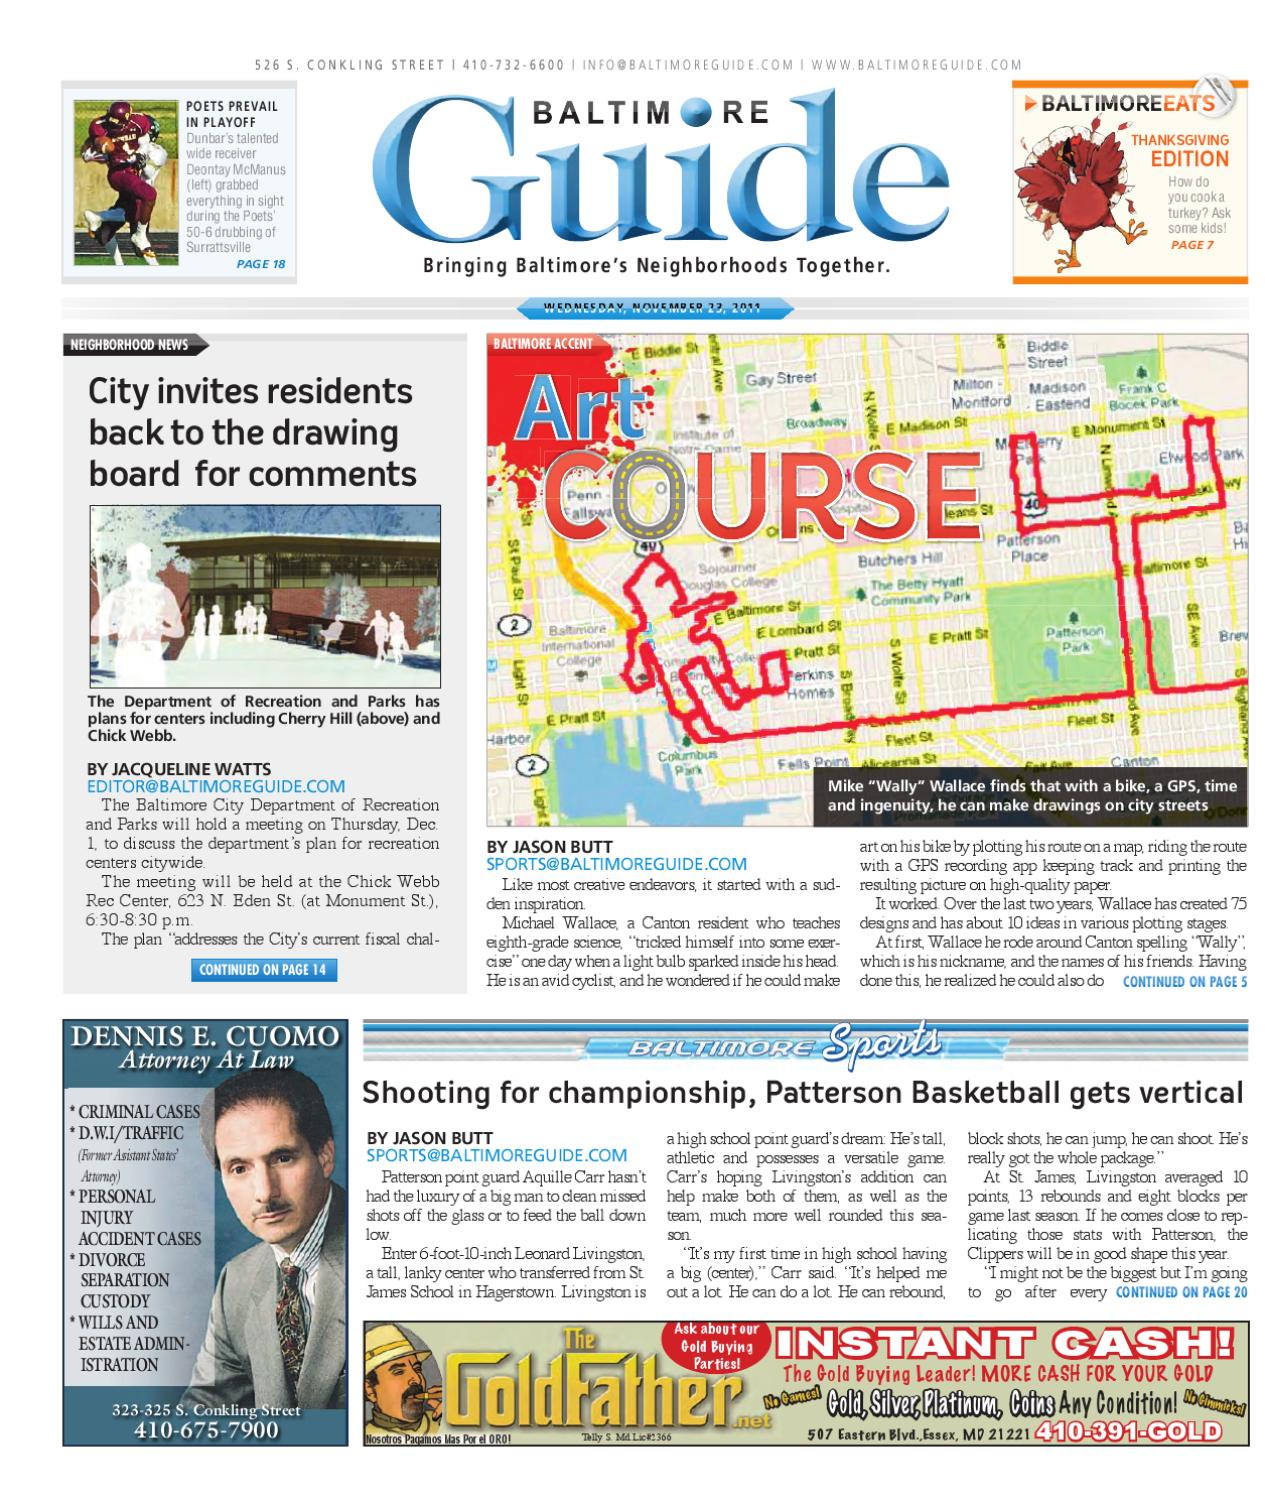 November 23, 2011 - The Baltimore Guide by The Baltimore